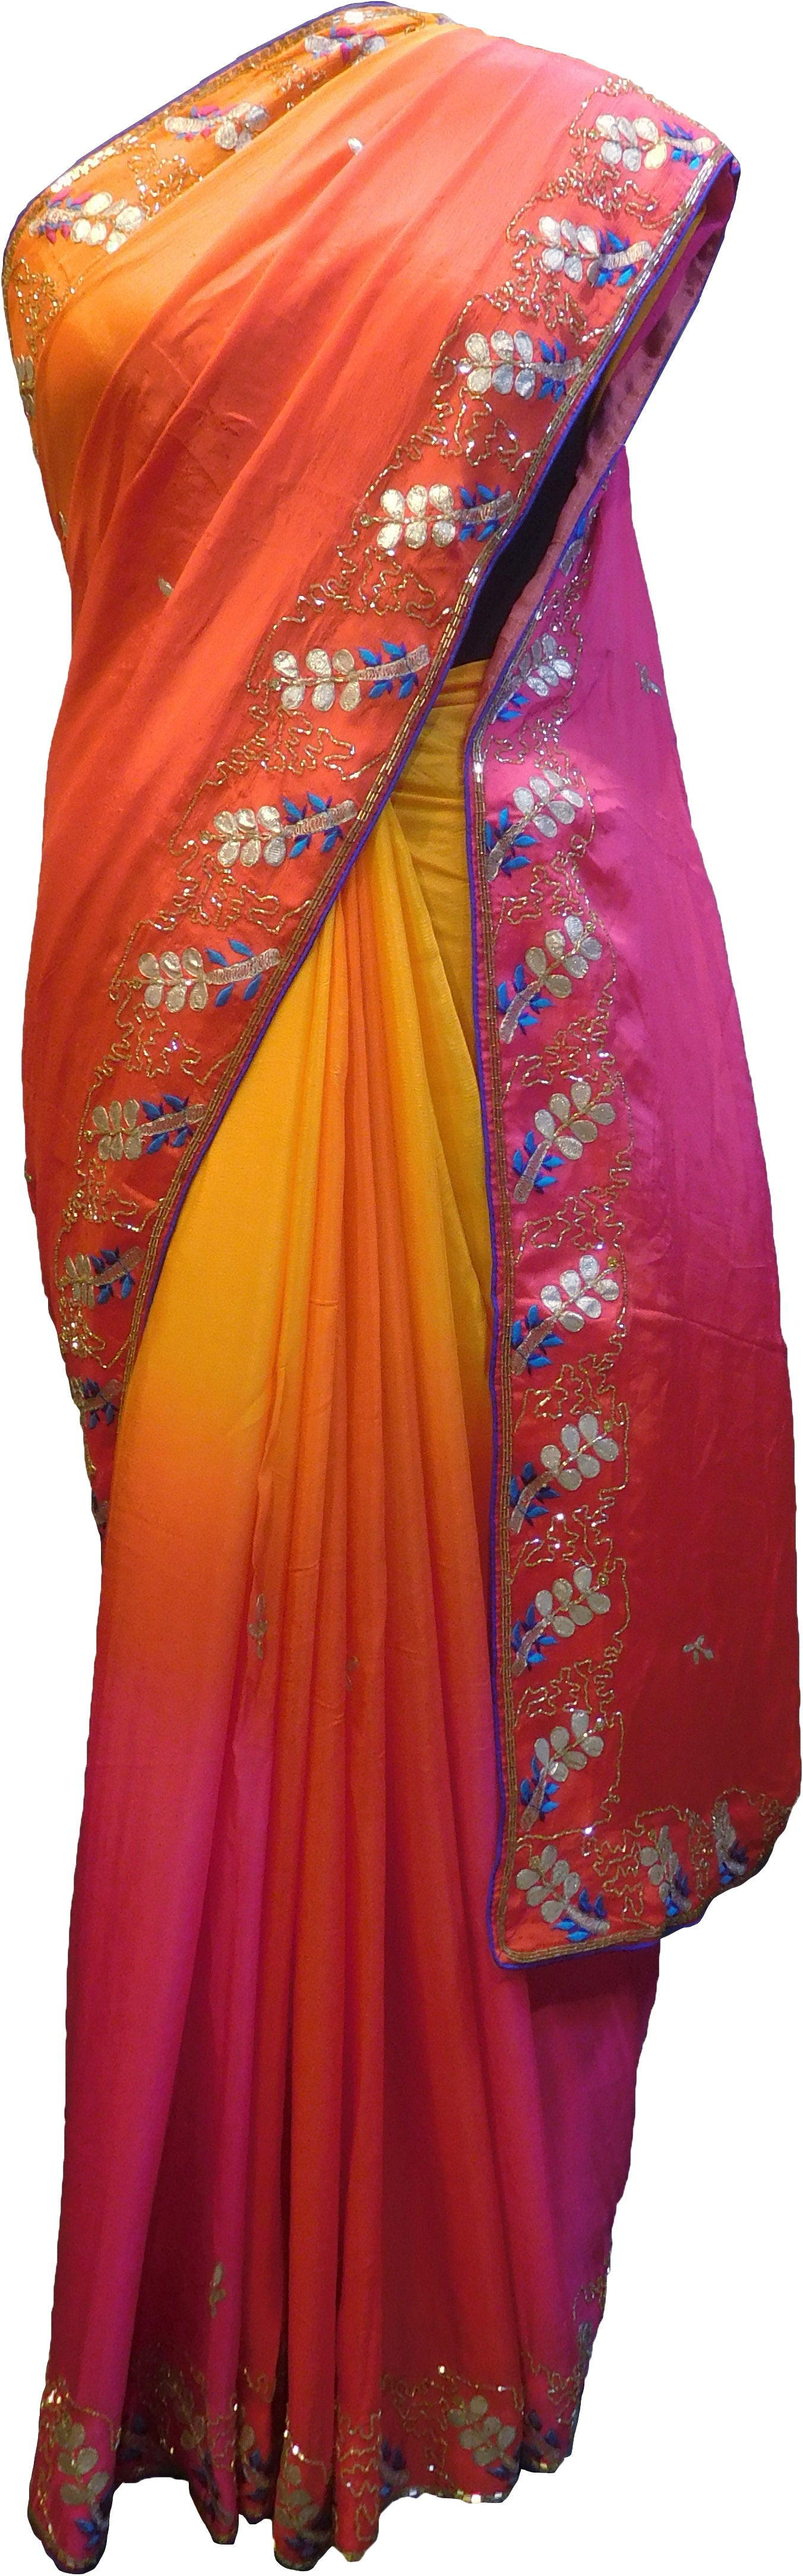 SMSAREE Red Designer Wedding Partywear Georgette (Viscos) Zari Thread & Cutdana Hand Embroidery Work Bridal Saree Sari With Blouse Piece F307